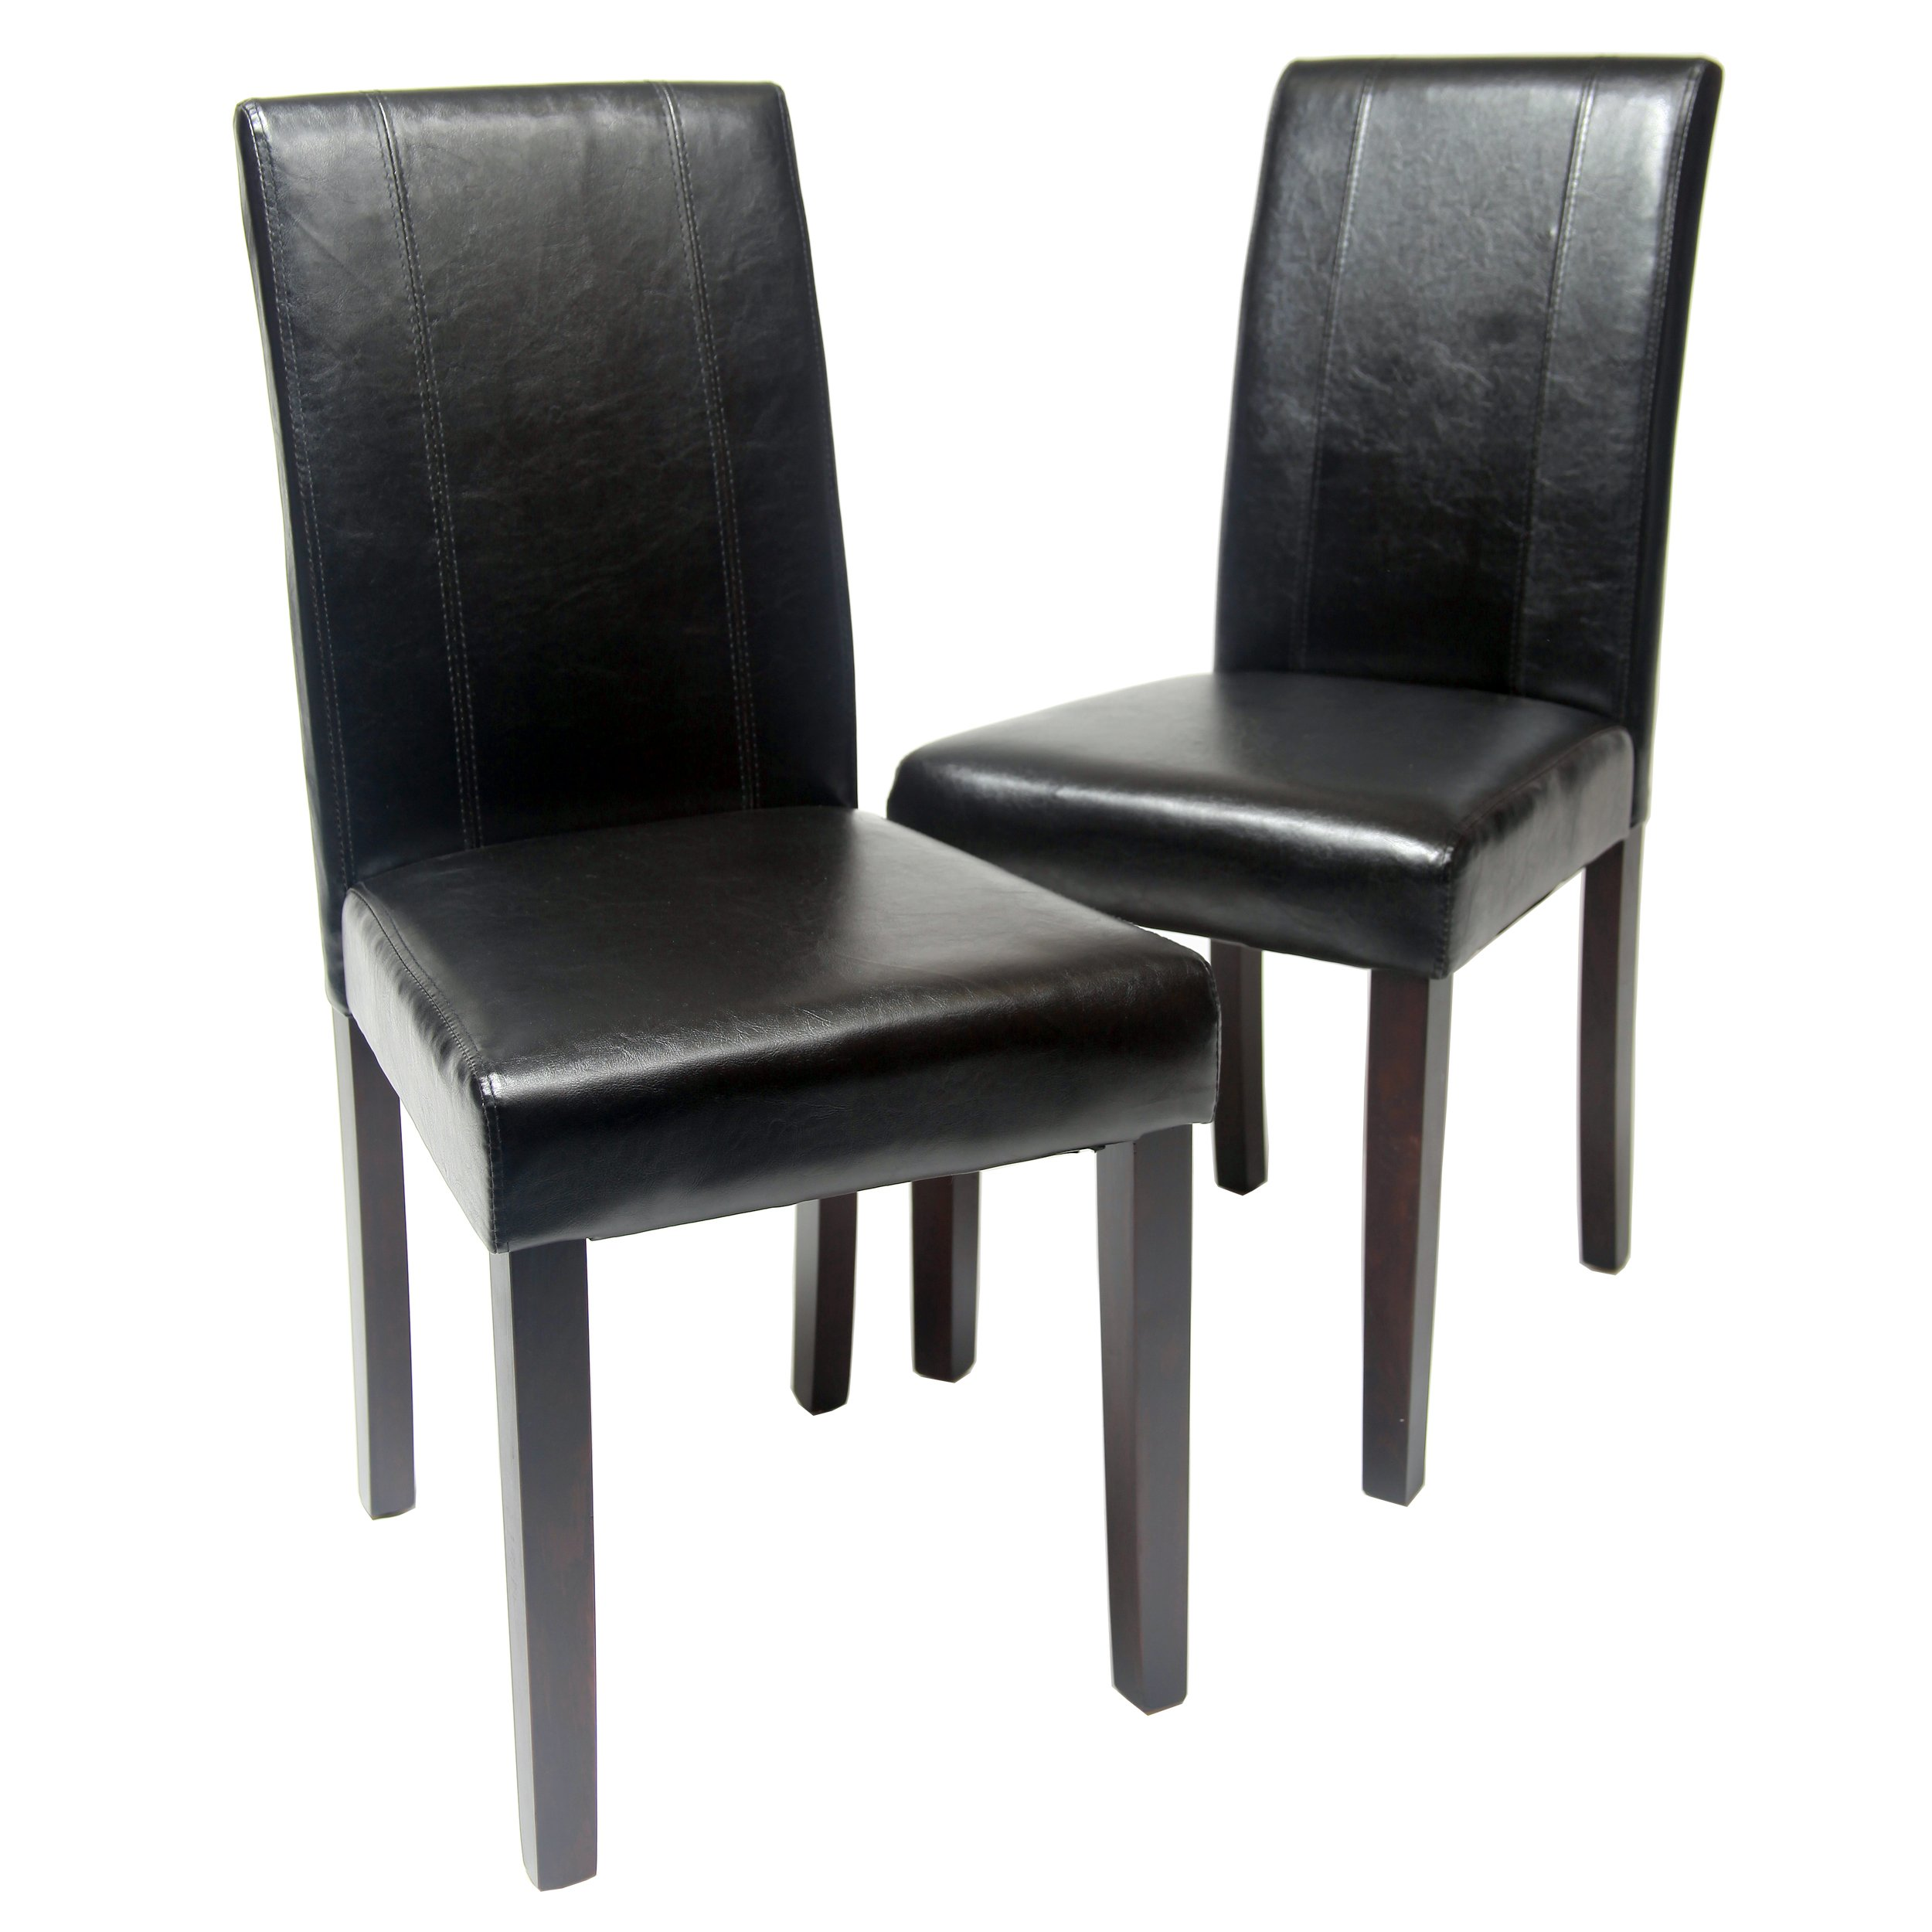 Roundhill Furniture Urban Style Solid Wood Leatherette Padded Parson Chair, Black, Set of 2 by Roundhill Furniture